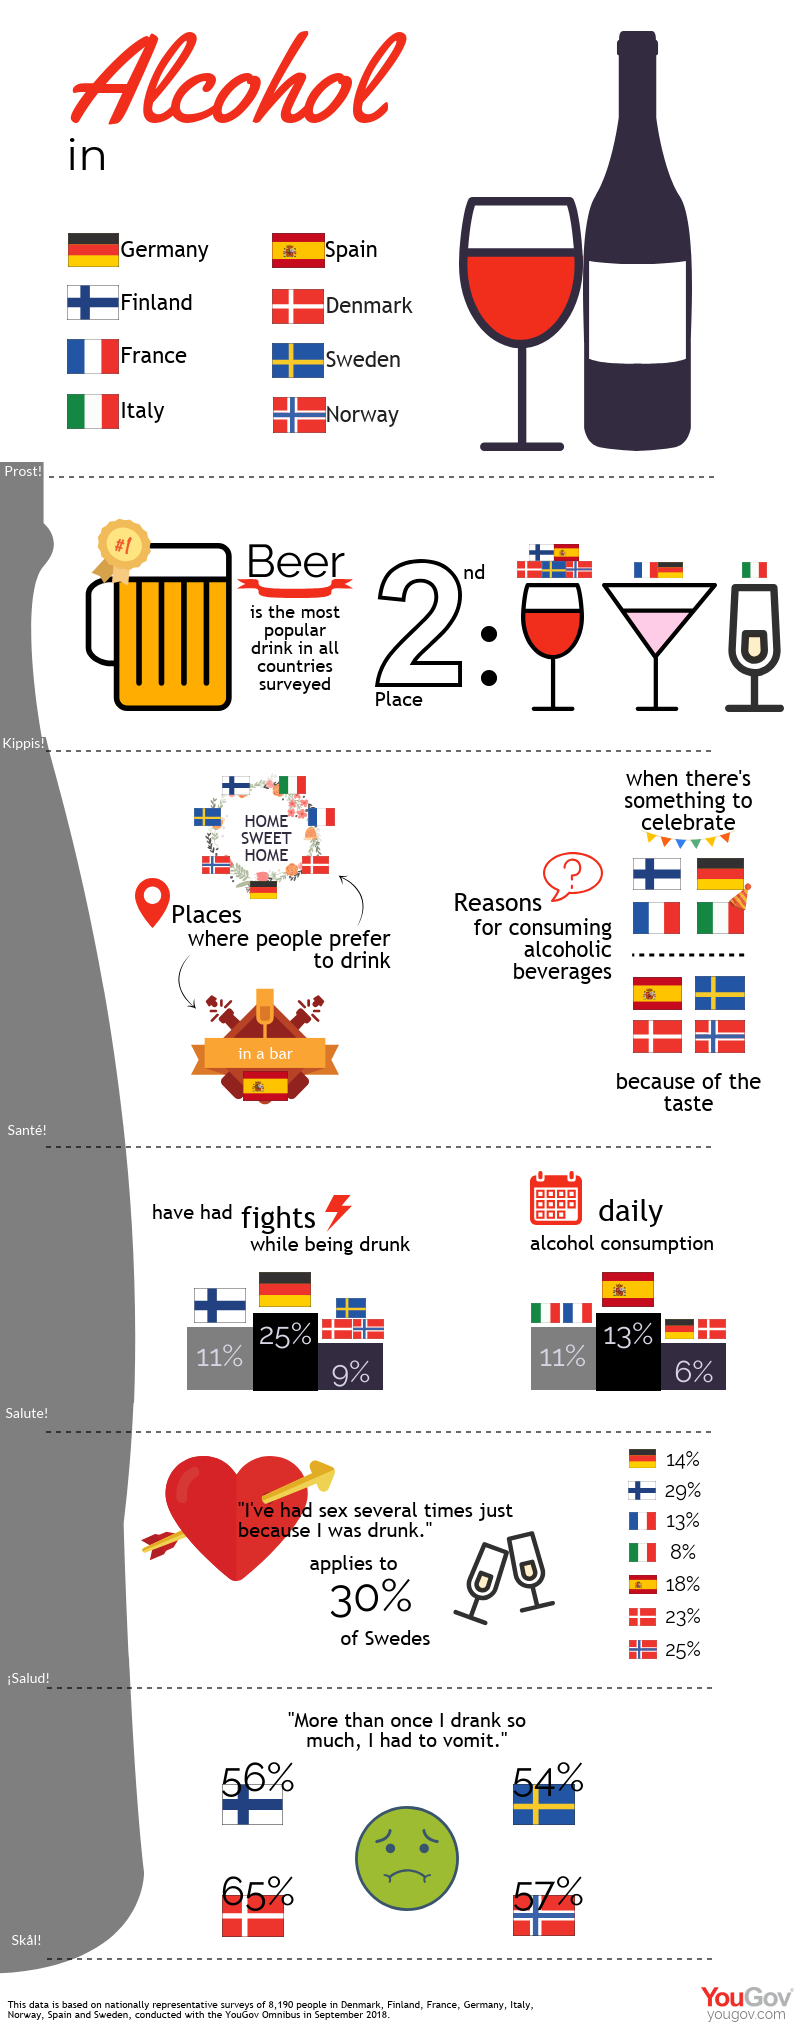 Alcohol in Europe